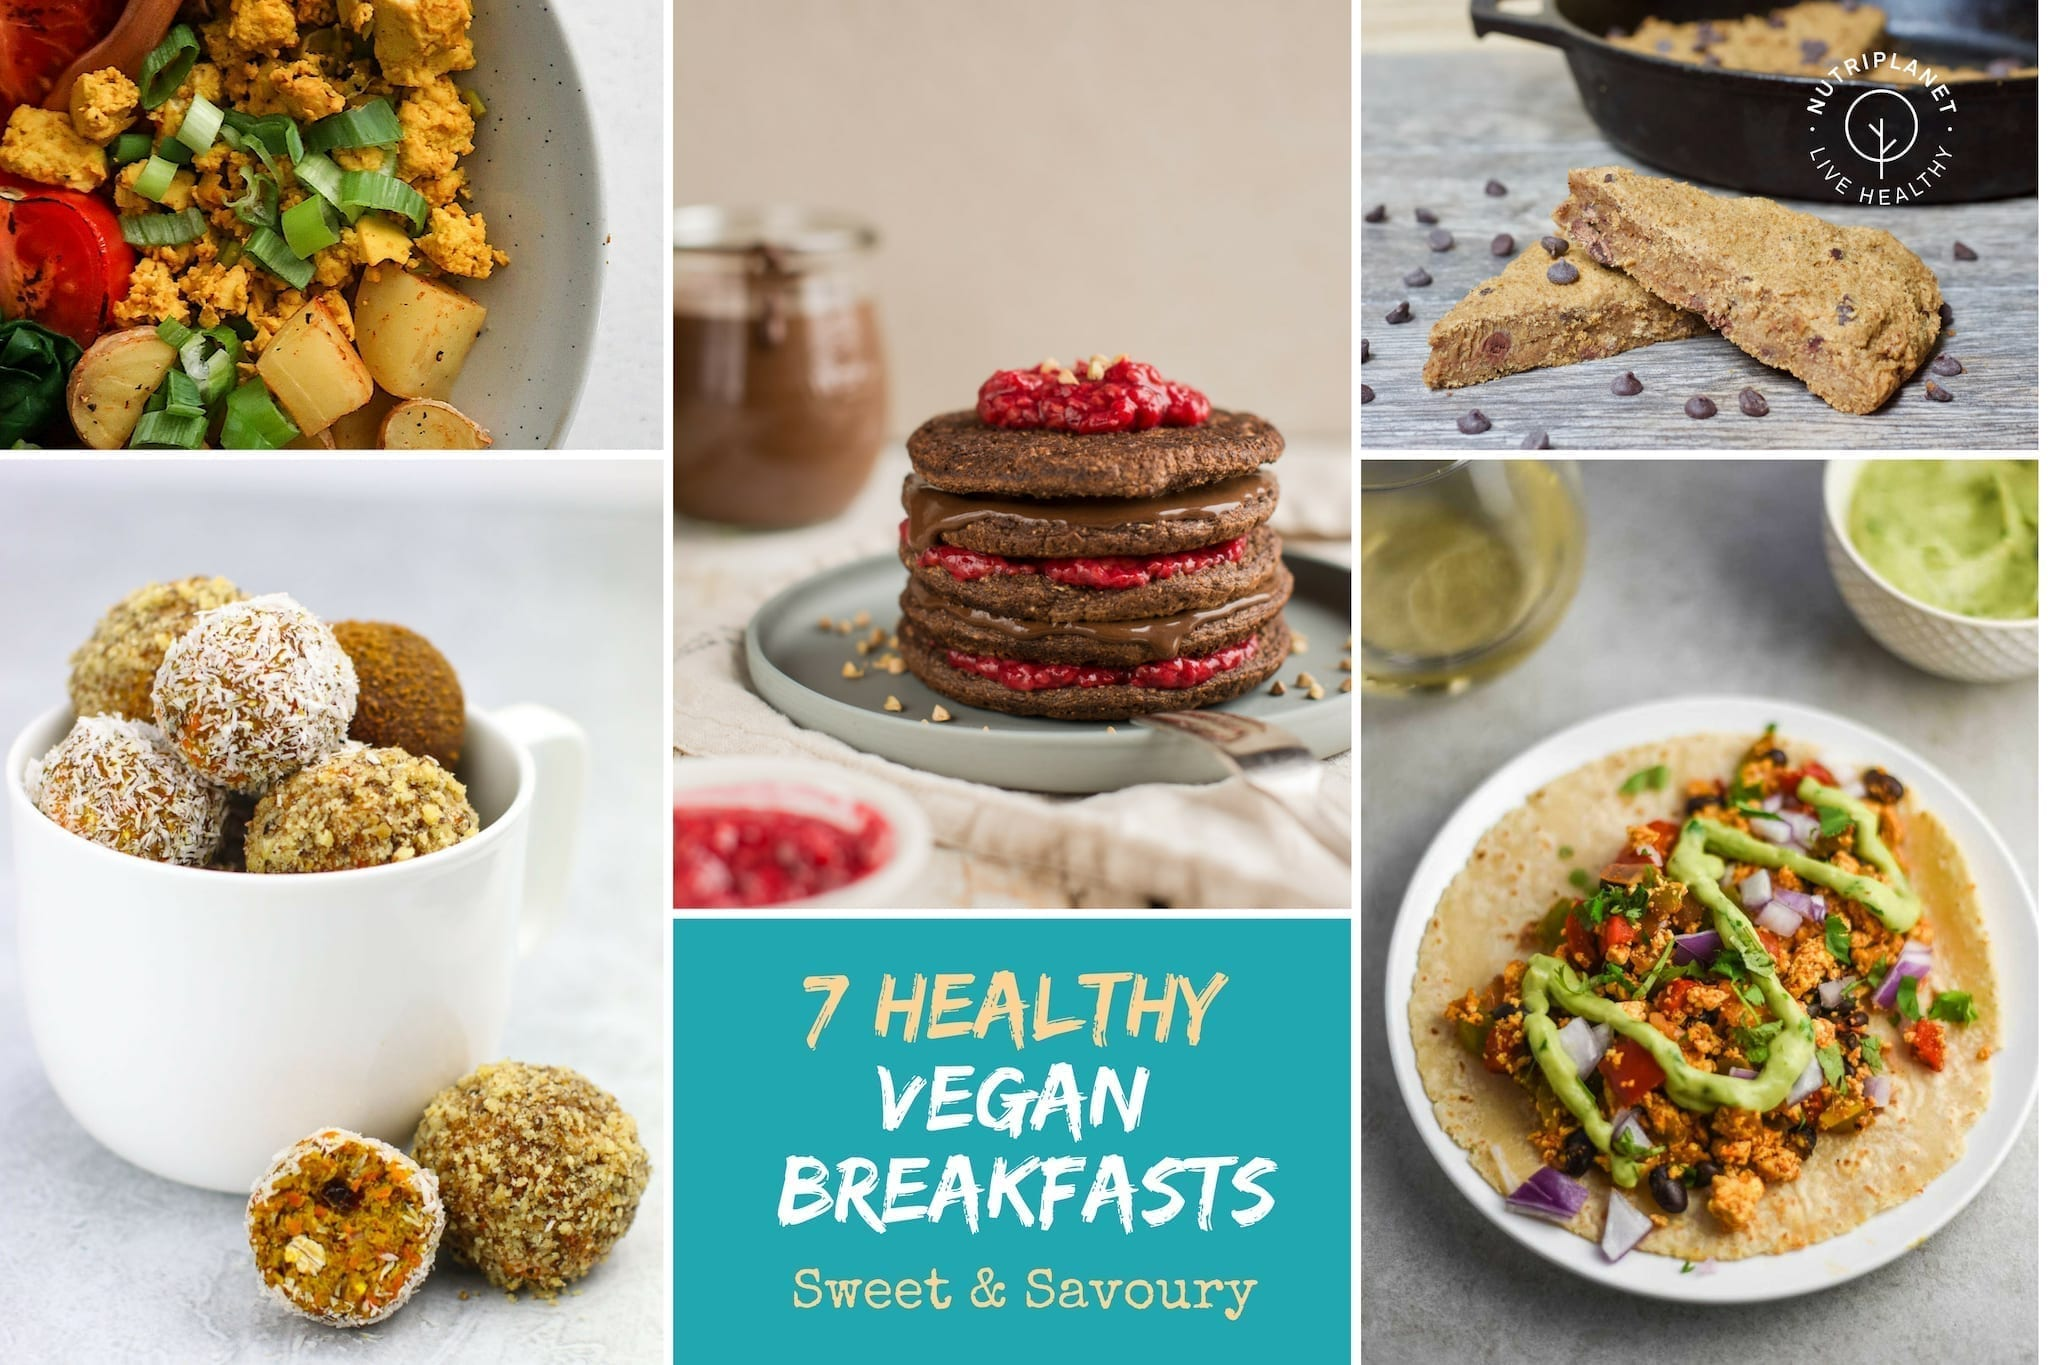 Healthy Vegan Breakfast Recipes 7 Sweet And Savoury Ideas Nutriplanet